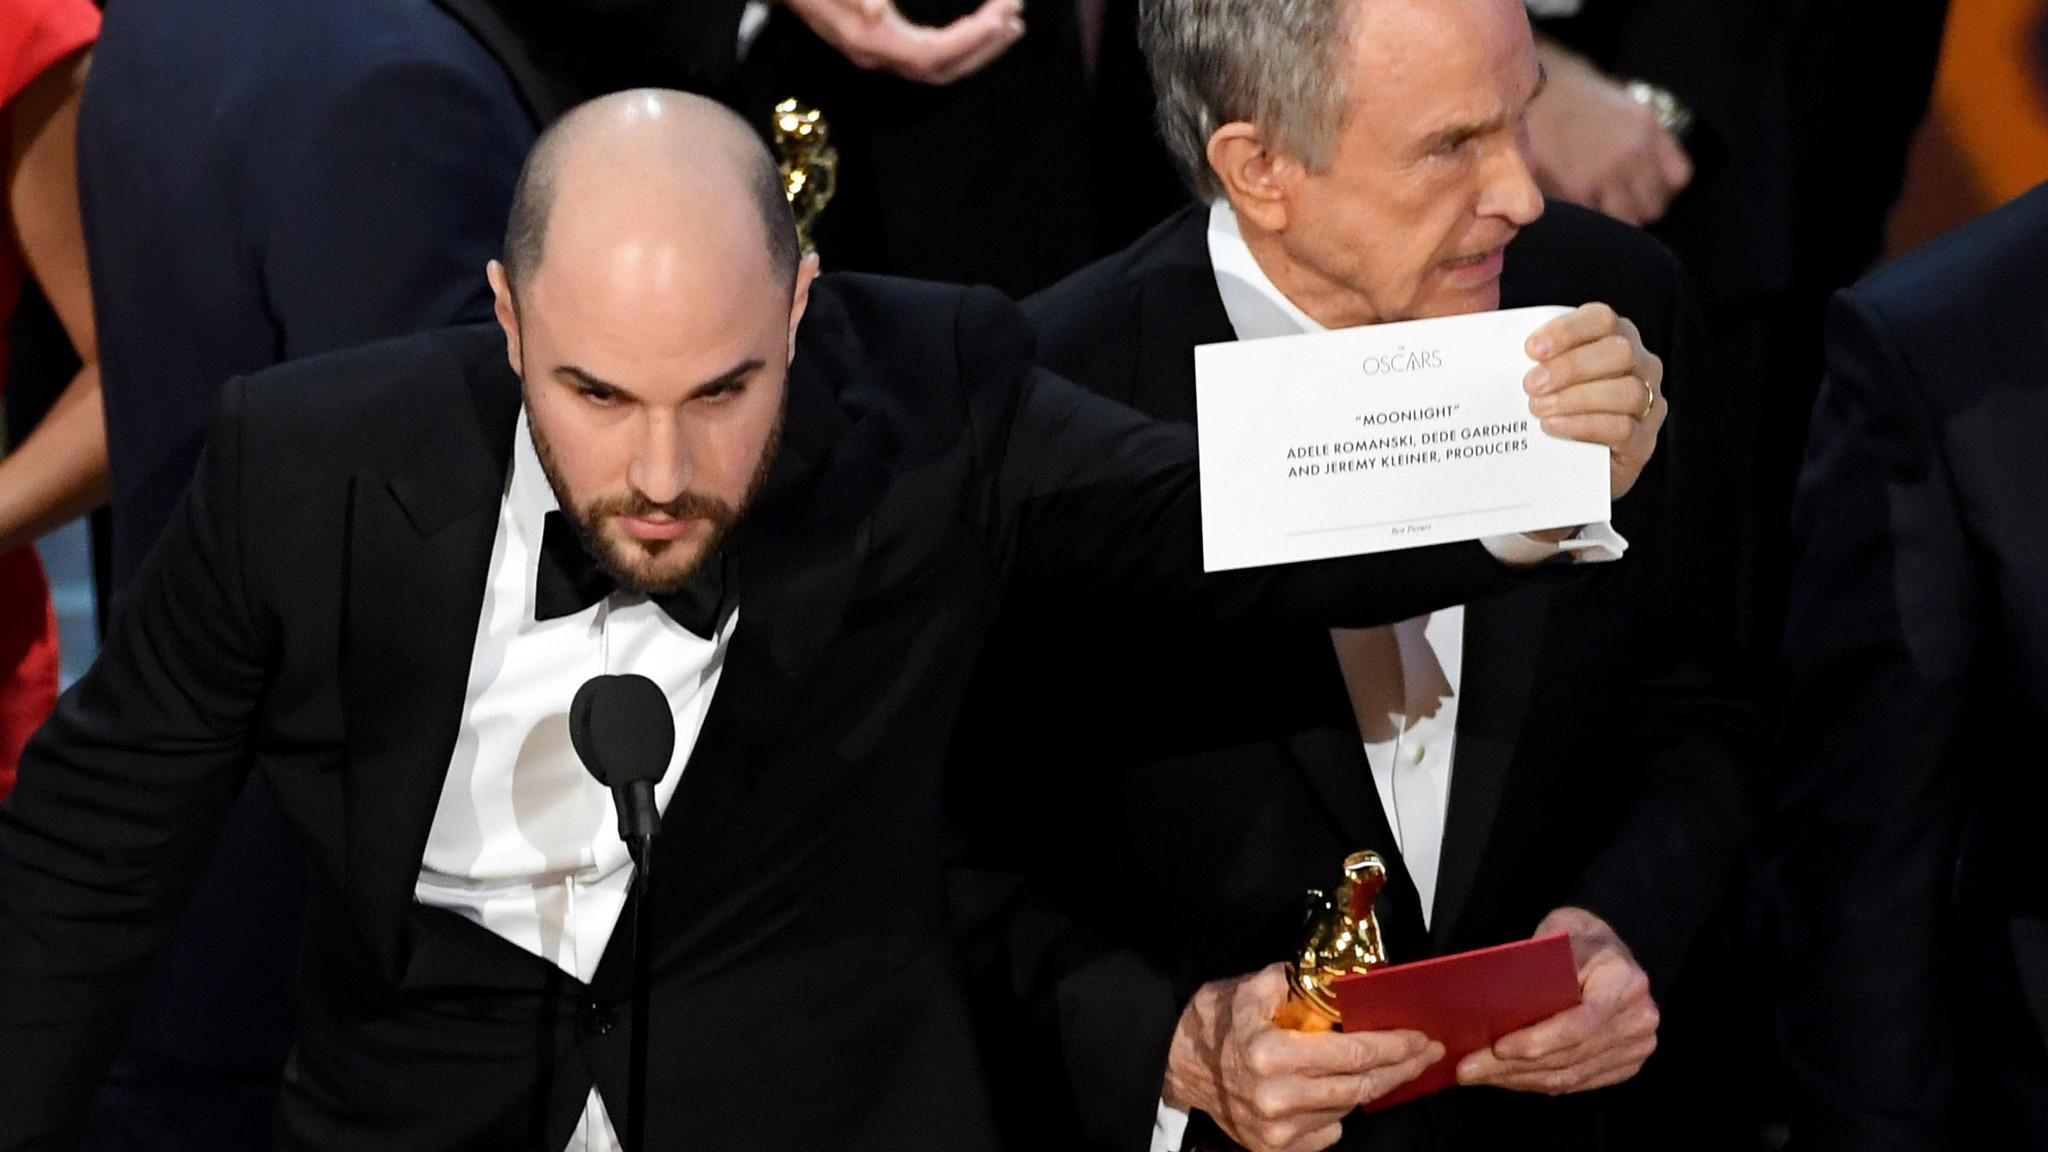 oscars 2017 mix up moonlight wins best picture after la la land oscars 2017 mix up moonlight wins best picture after la la land d winner the san diego union tribune